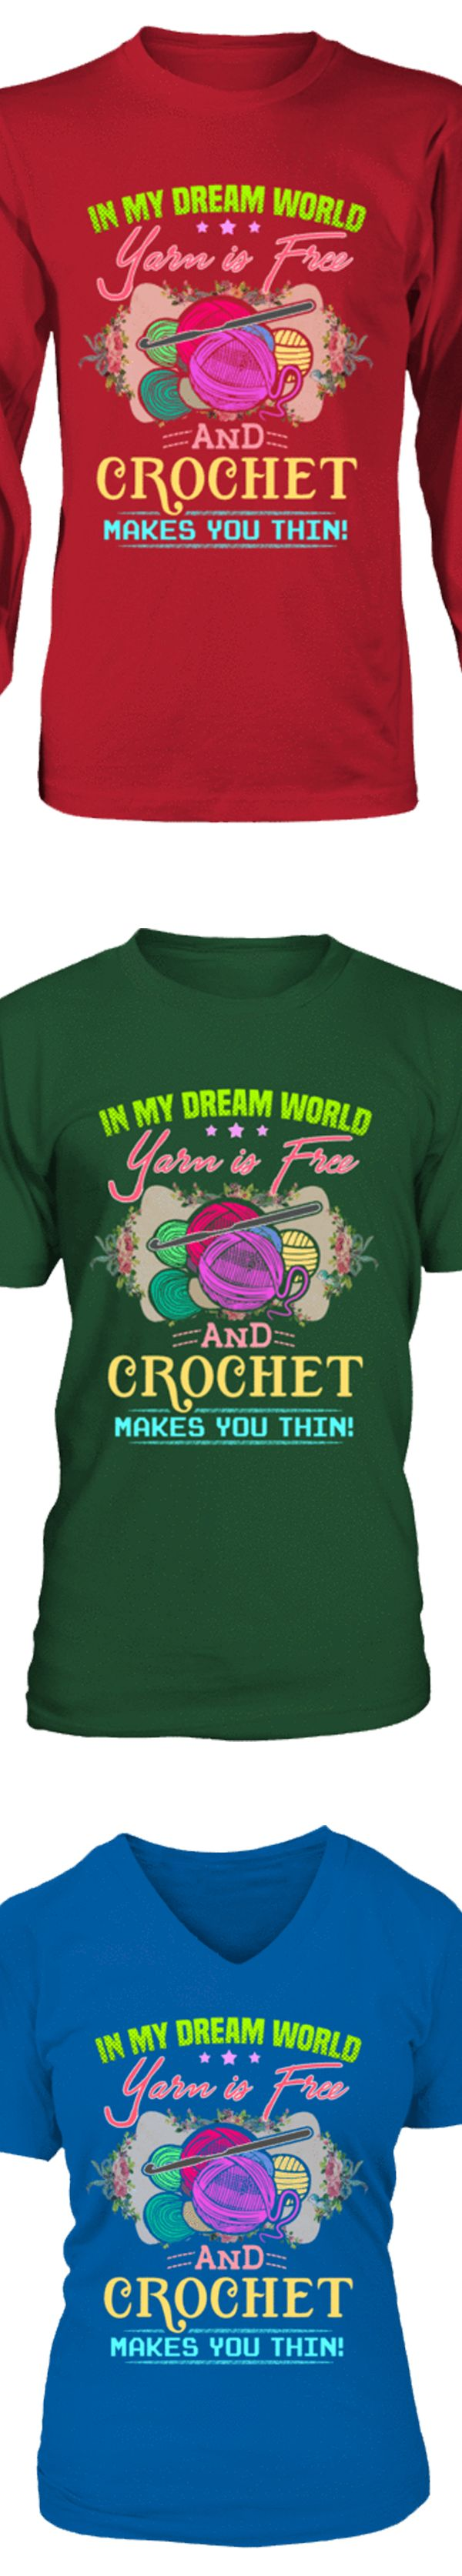 Design your own t-shirt hanes - Show Your Love Of Crochet With This Shirt Printed In The Usa Available In Hanes Cotton T Shirt V Neck